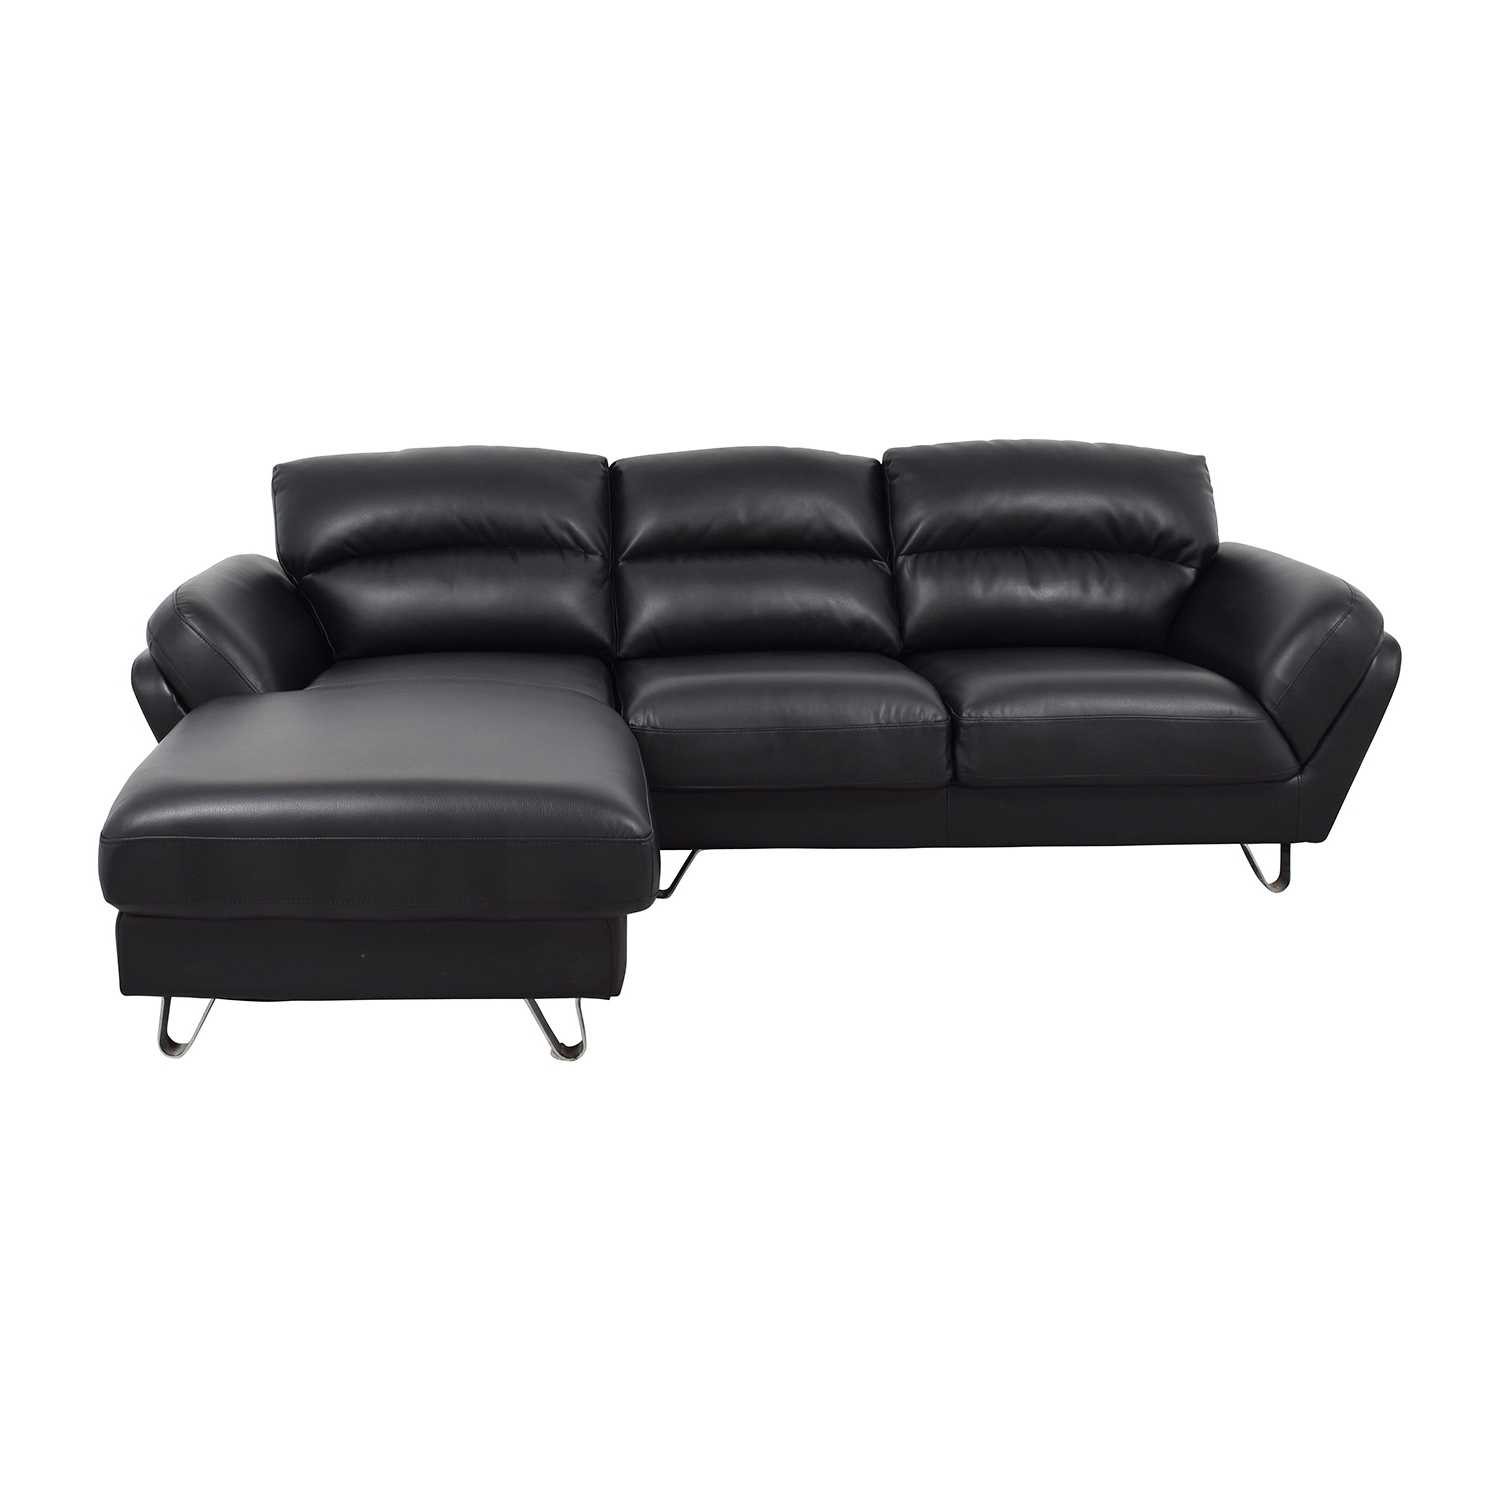 [%51% Off – Contemporary Faux Leather Two Piece Sectional Sofa / Sofas Pertaining To Widely Used Mobilia Sectional Sofas|mobilia Sectional Sofas Throughout Well Known 51% Off – Contemporary Faux Leather Two Piece Sectional Sofa / Sofas|widely Used Mobilia Sectional Sofas Pertaining To 51% Off – Contemporary Faux Leather Two Piece Sectional Sofa / Sofas|popular 51% Off – Contemporary Faux Leather Two Piece Sectional Sofa / Sofas In Mobilia Sectional Sofas%] (View 15 of 20)